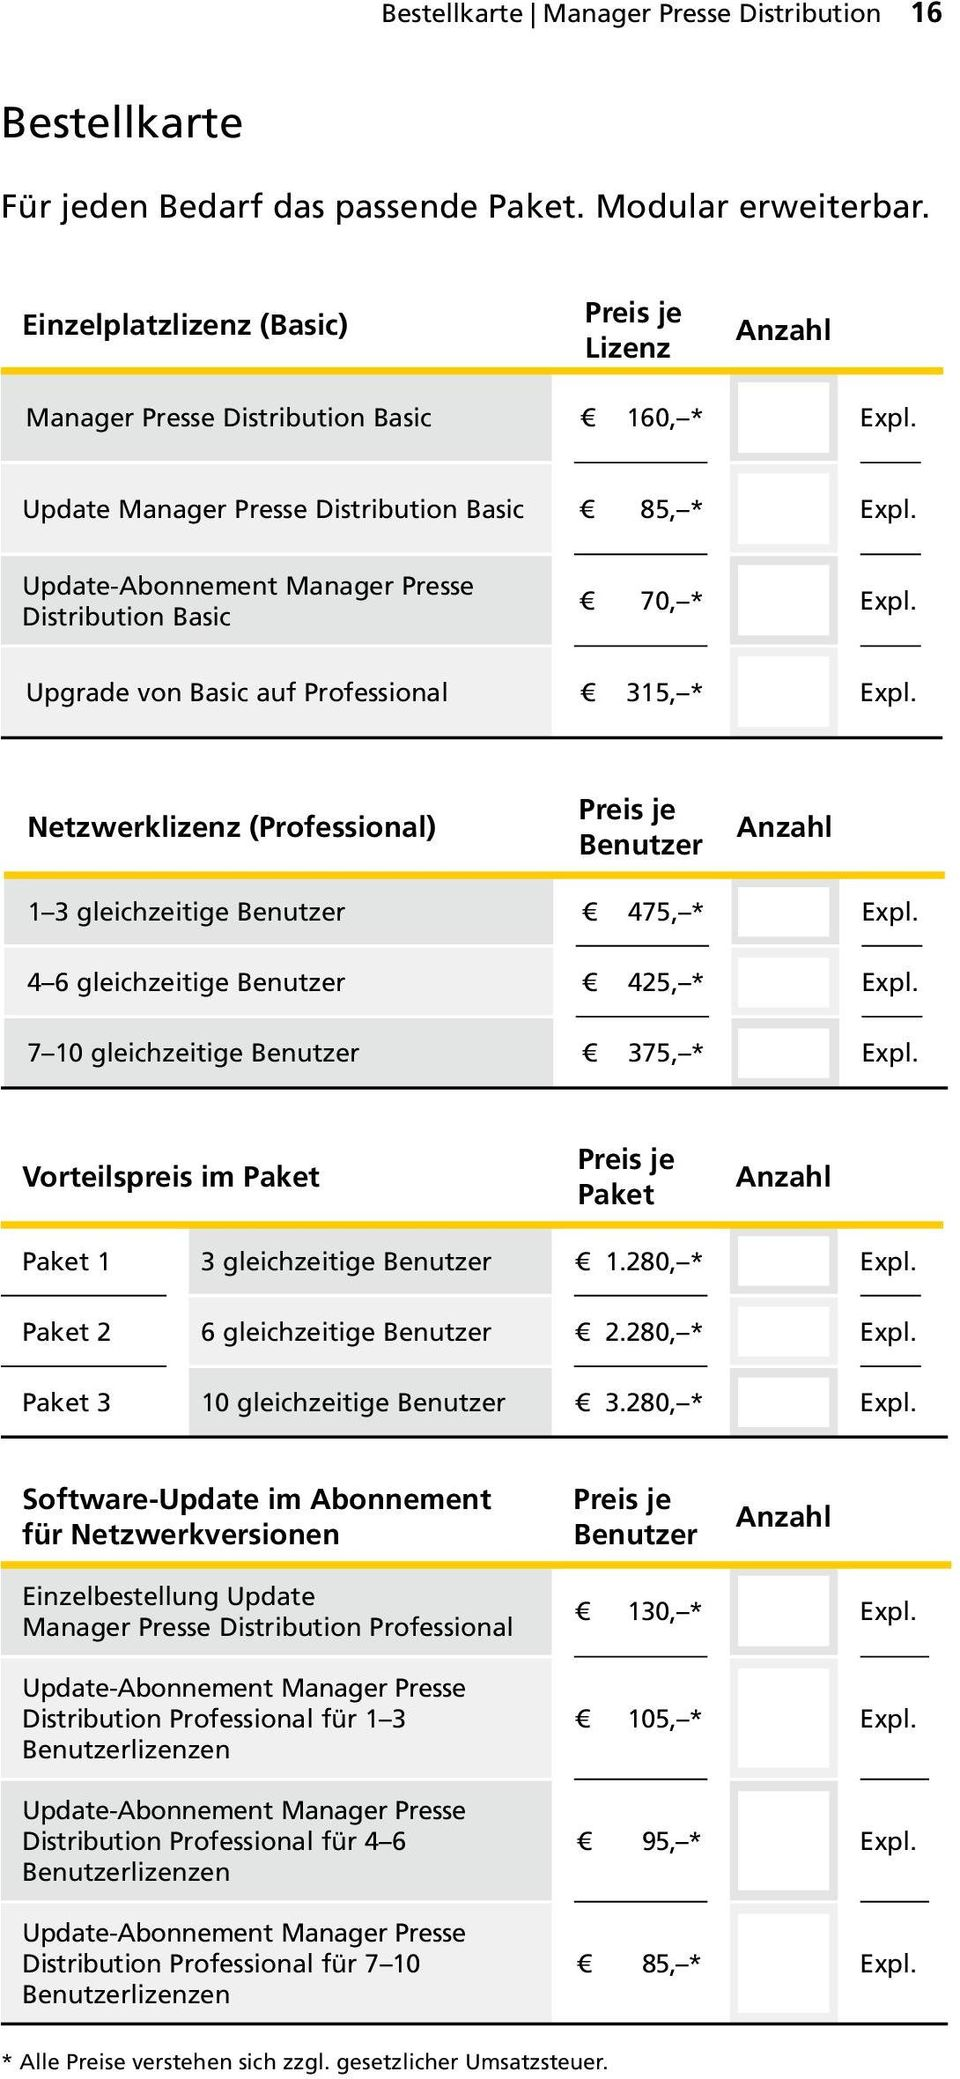 Update-Abonnement Manager Presse Distribution Basic 70, * Epl. Upgrade von Basic auf Professional 315, * Epl.